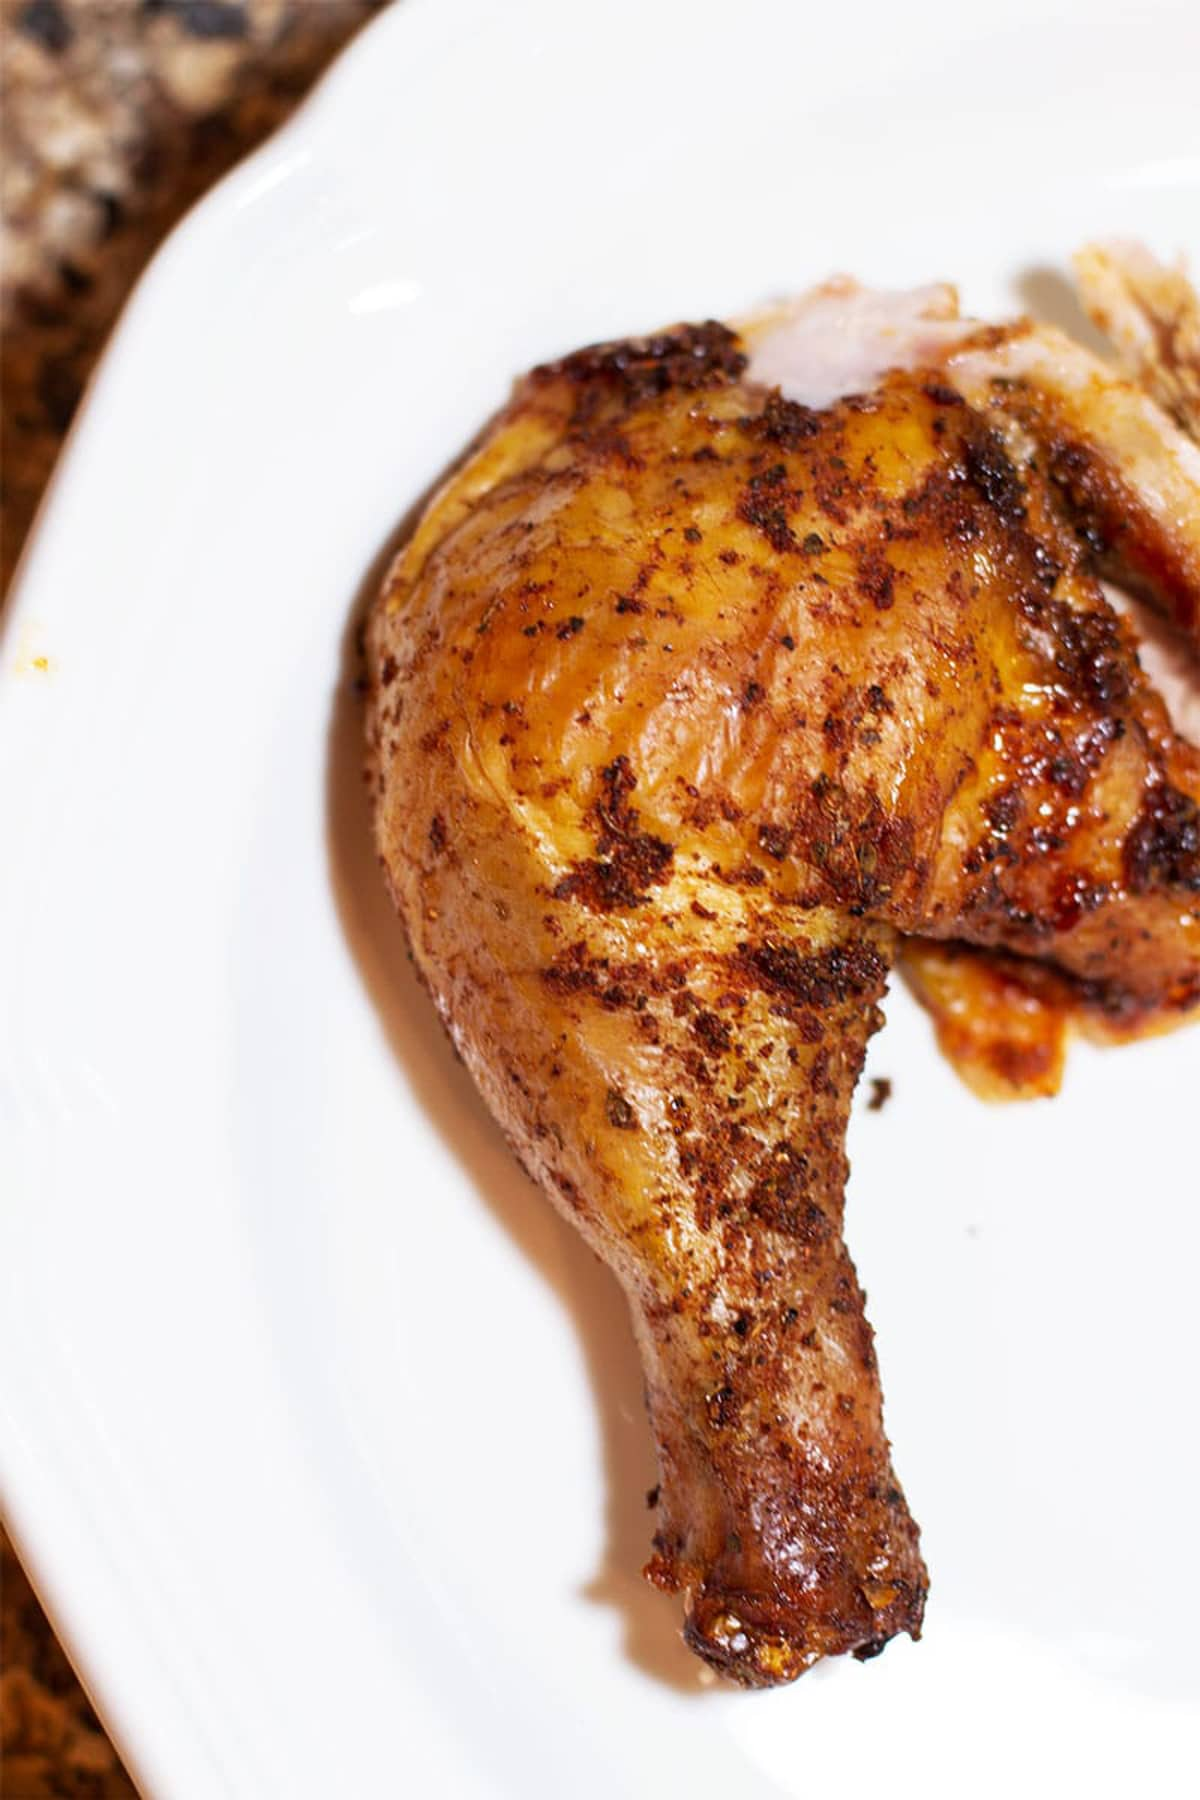 Smoked Applewood chicken leg on a white plate.